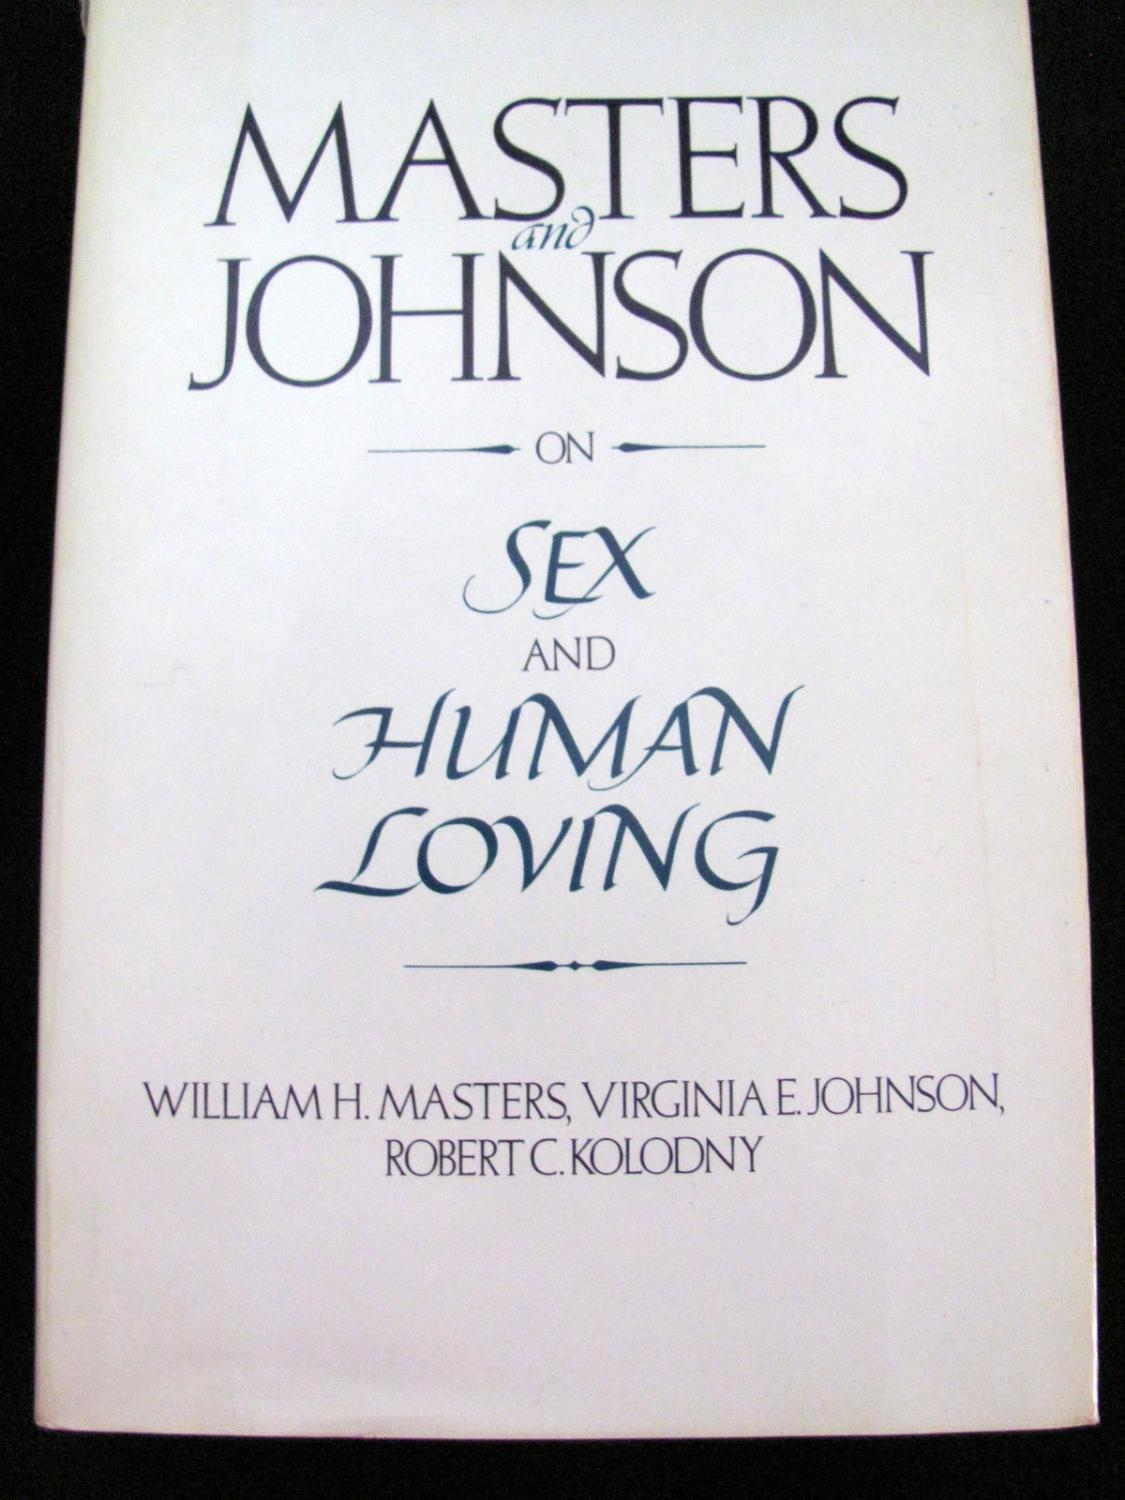 On sex and human loving